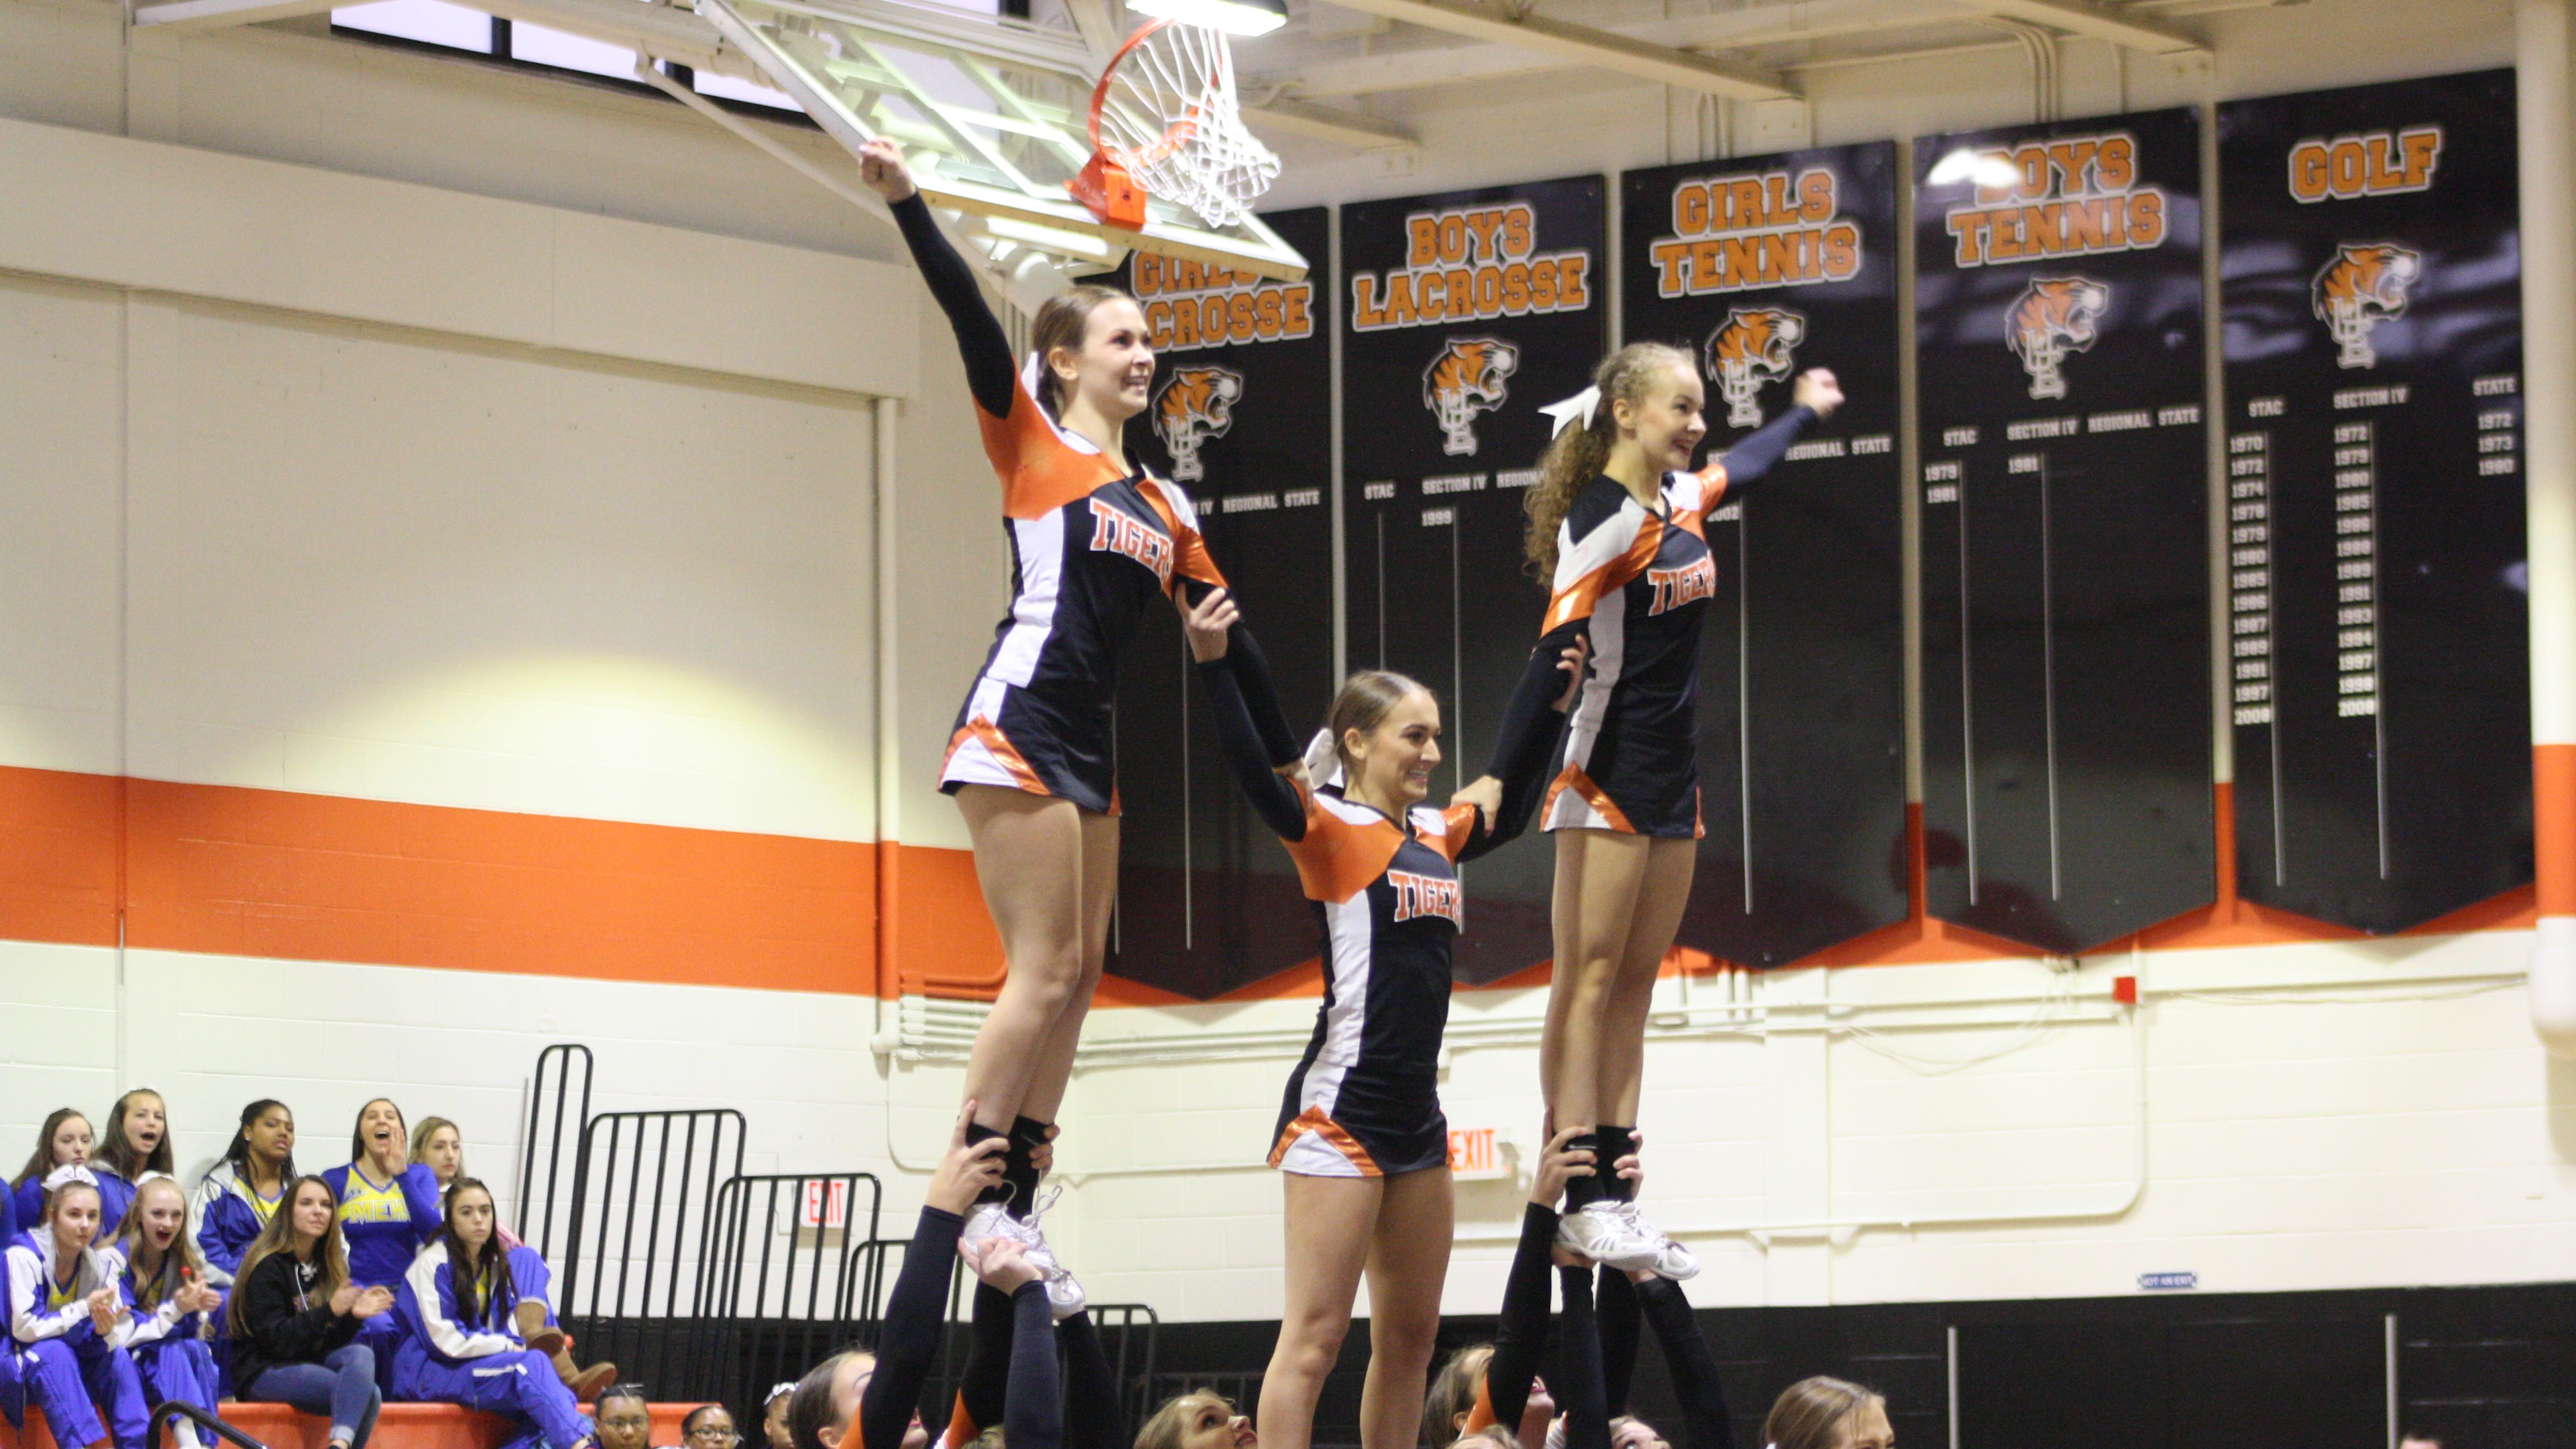 The Fall 2018 STAC Cheerleading Championship was held at Union-Endicott High School Sunday. Union-Endicott took home first place for Division 1 Varsity Cheerleading.